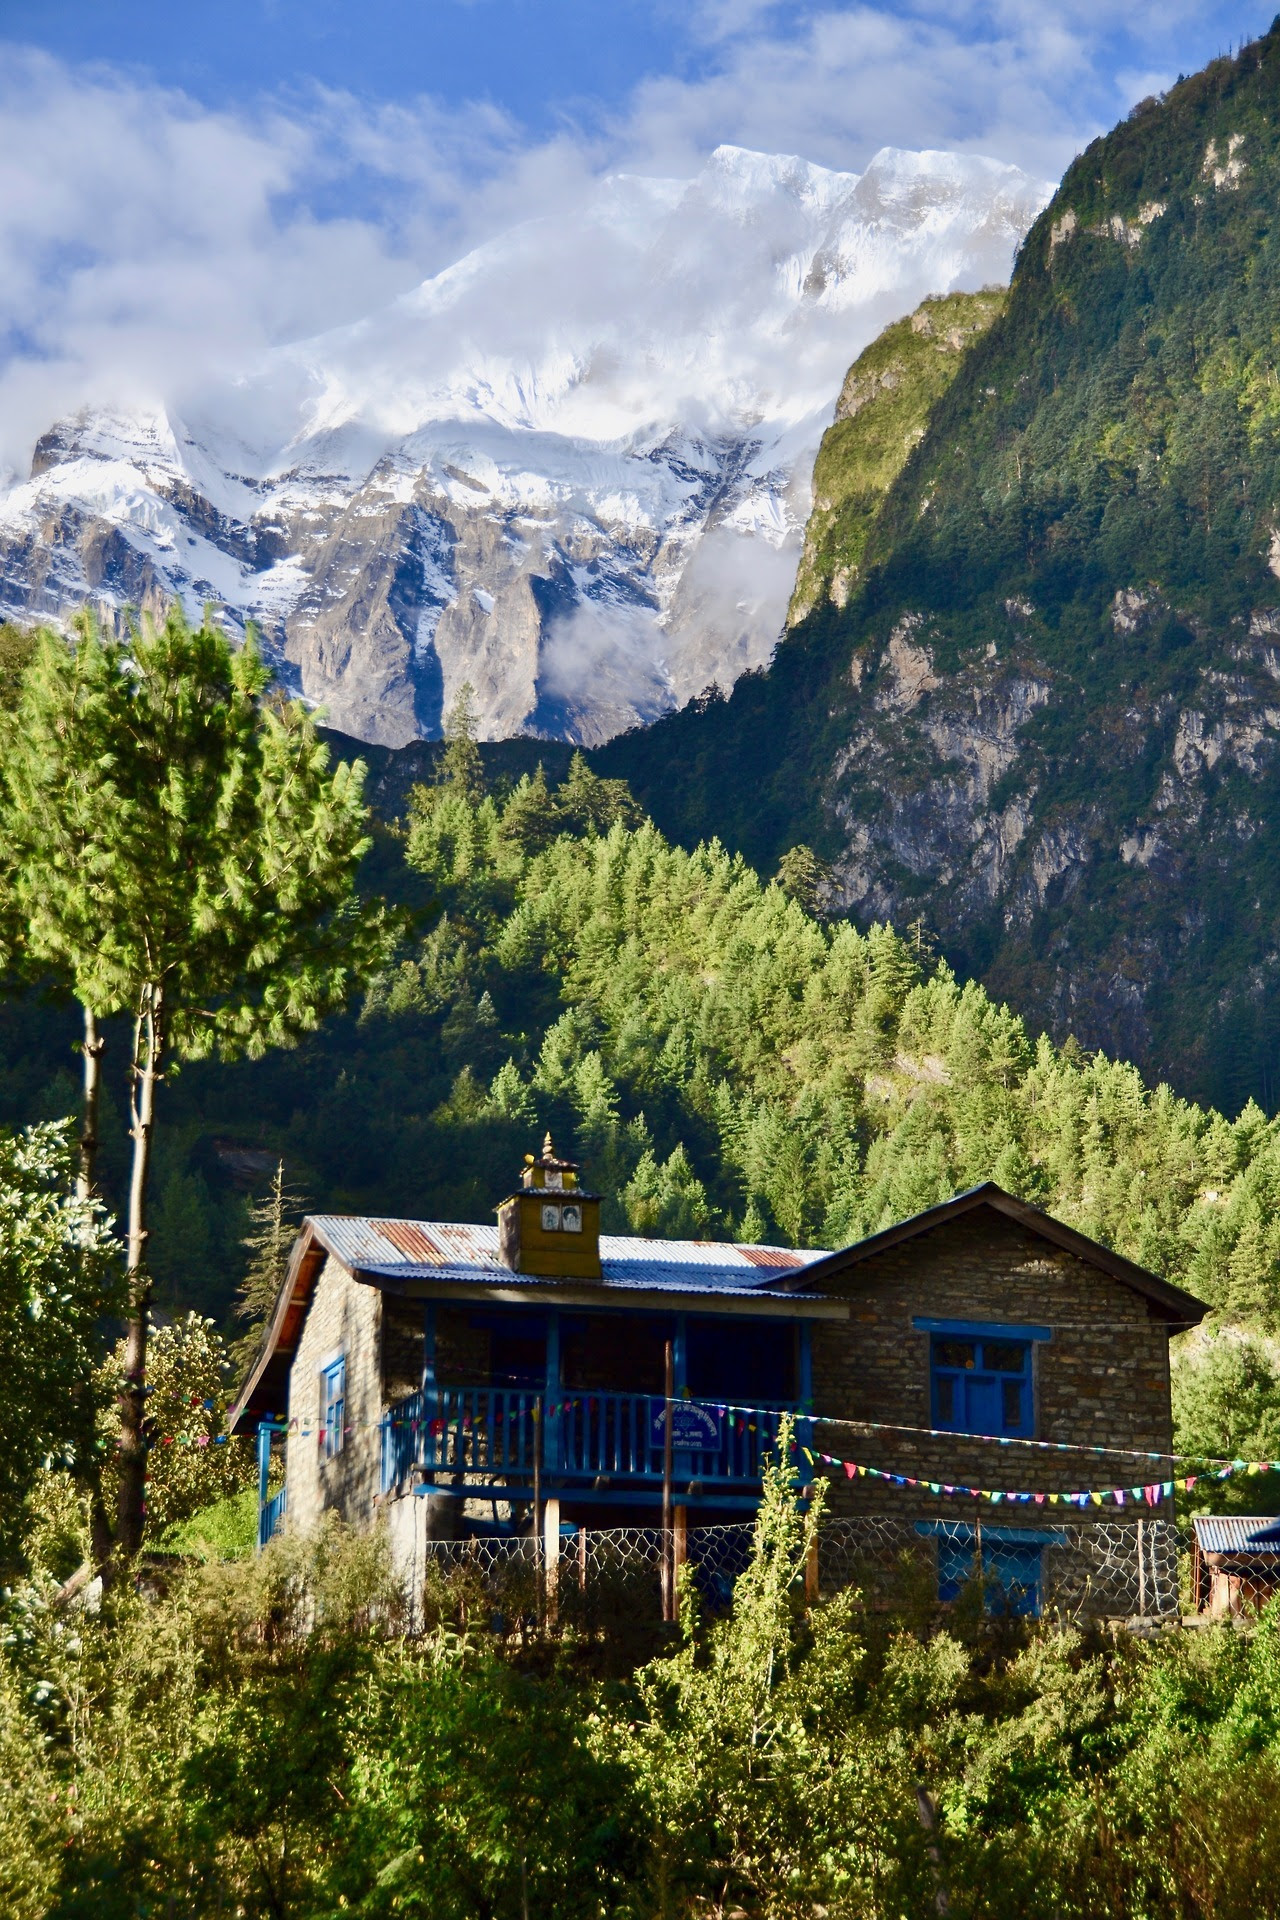 Located just outside of the small mountain town of Chame in Nepal This cabin has access to hot springs and the Trishuli river along with stunning views of Annapurna range behind it. Simple living is found in this predominately stone and lumber...